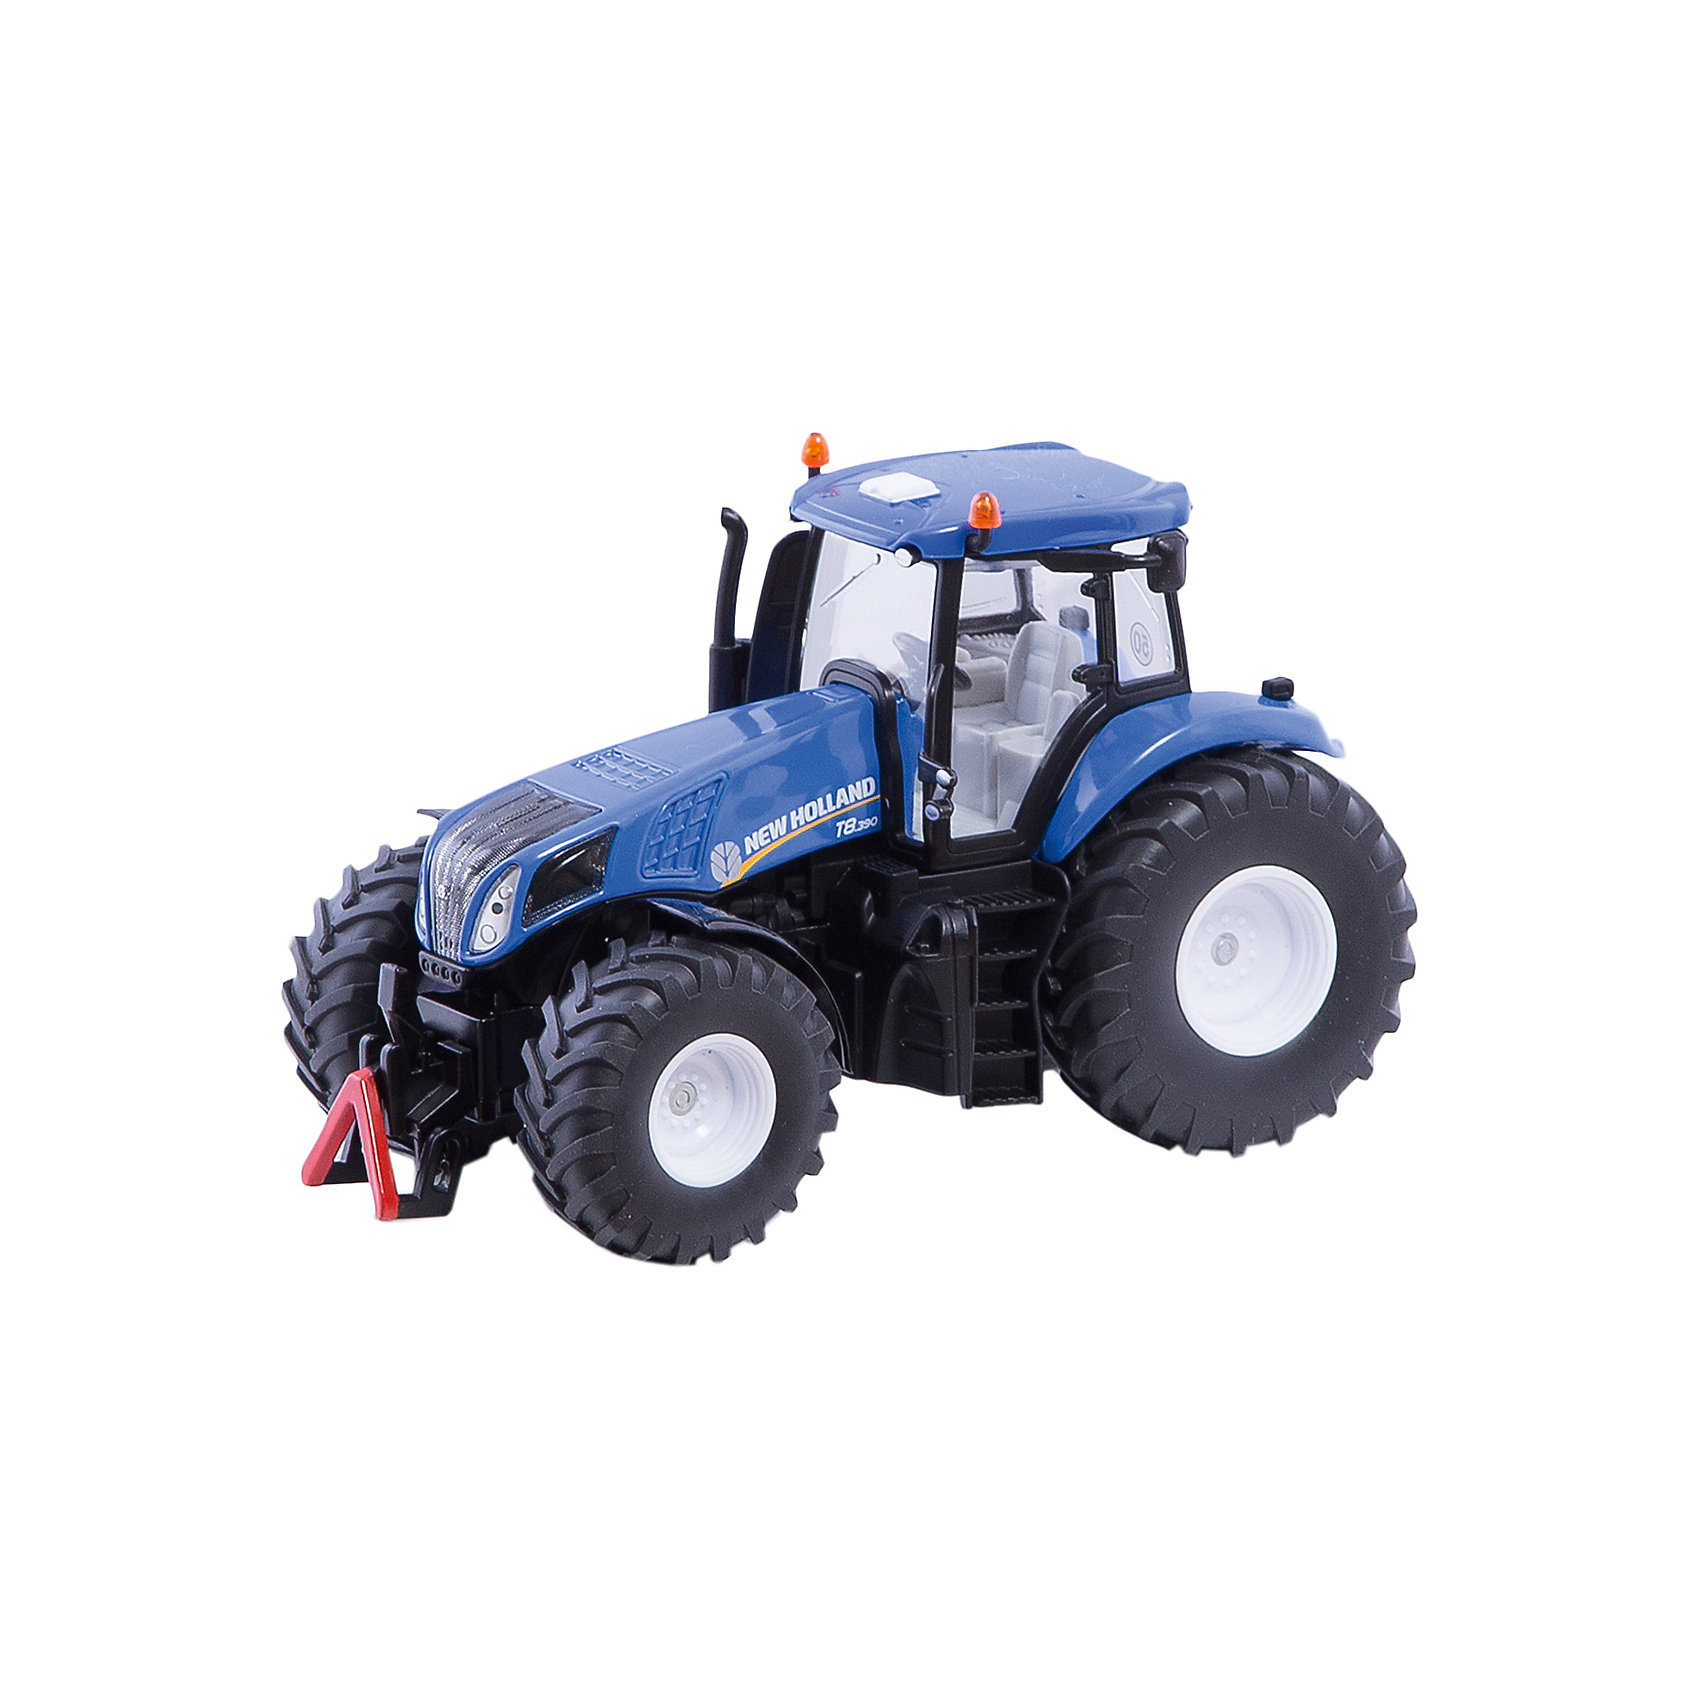 SIKU Трактор New Holland, синий (1:32), SIKU игрушка siku трактор new holland t8 390 6 7 3 4 4 4см 1012